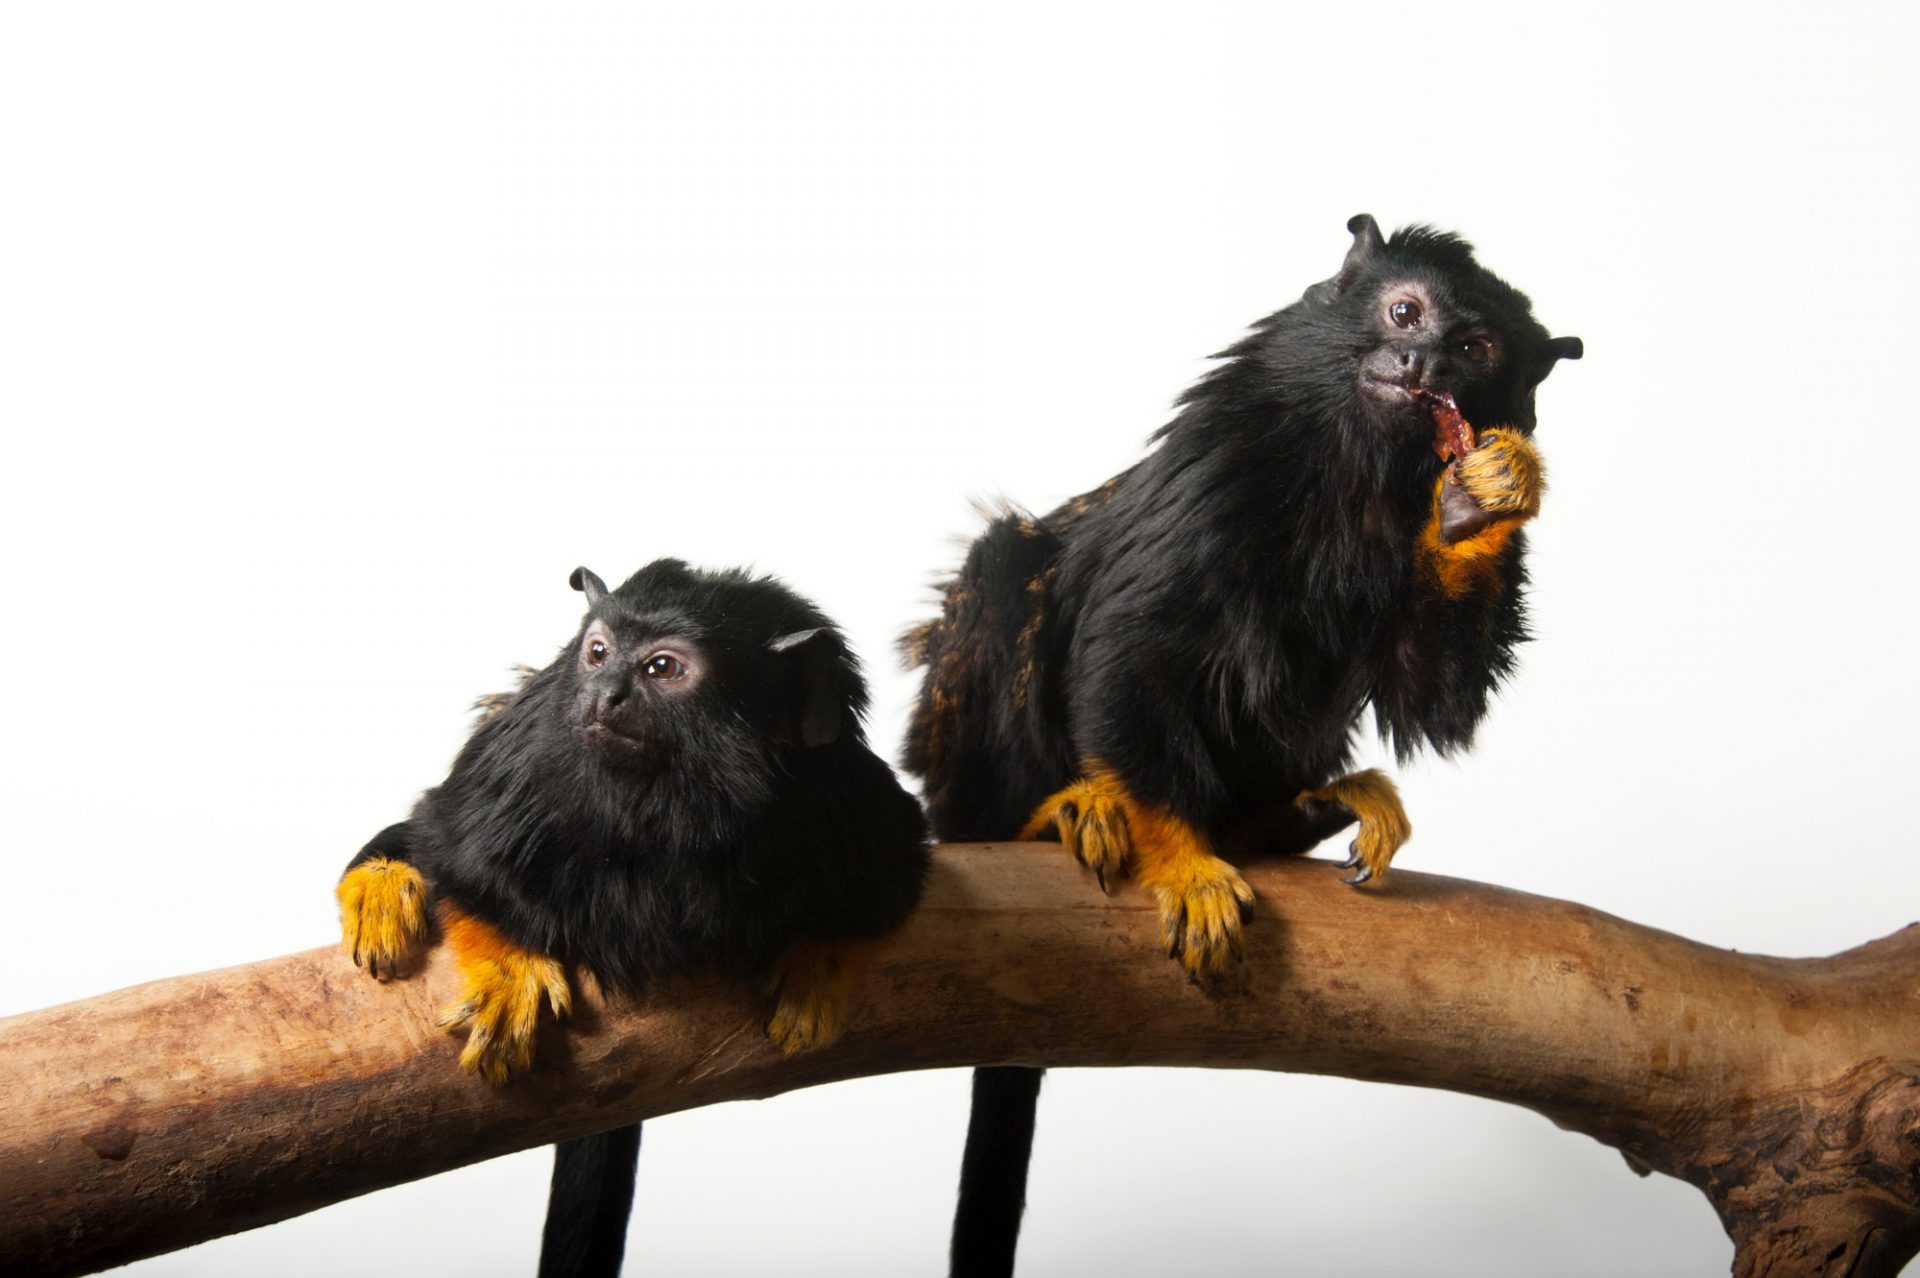 Photo: A pair of golden-handed tamarins (Saguinus midas) at the Miller Park Zoo